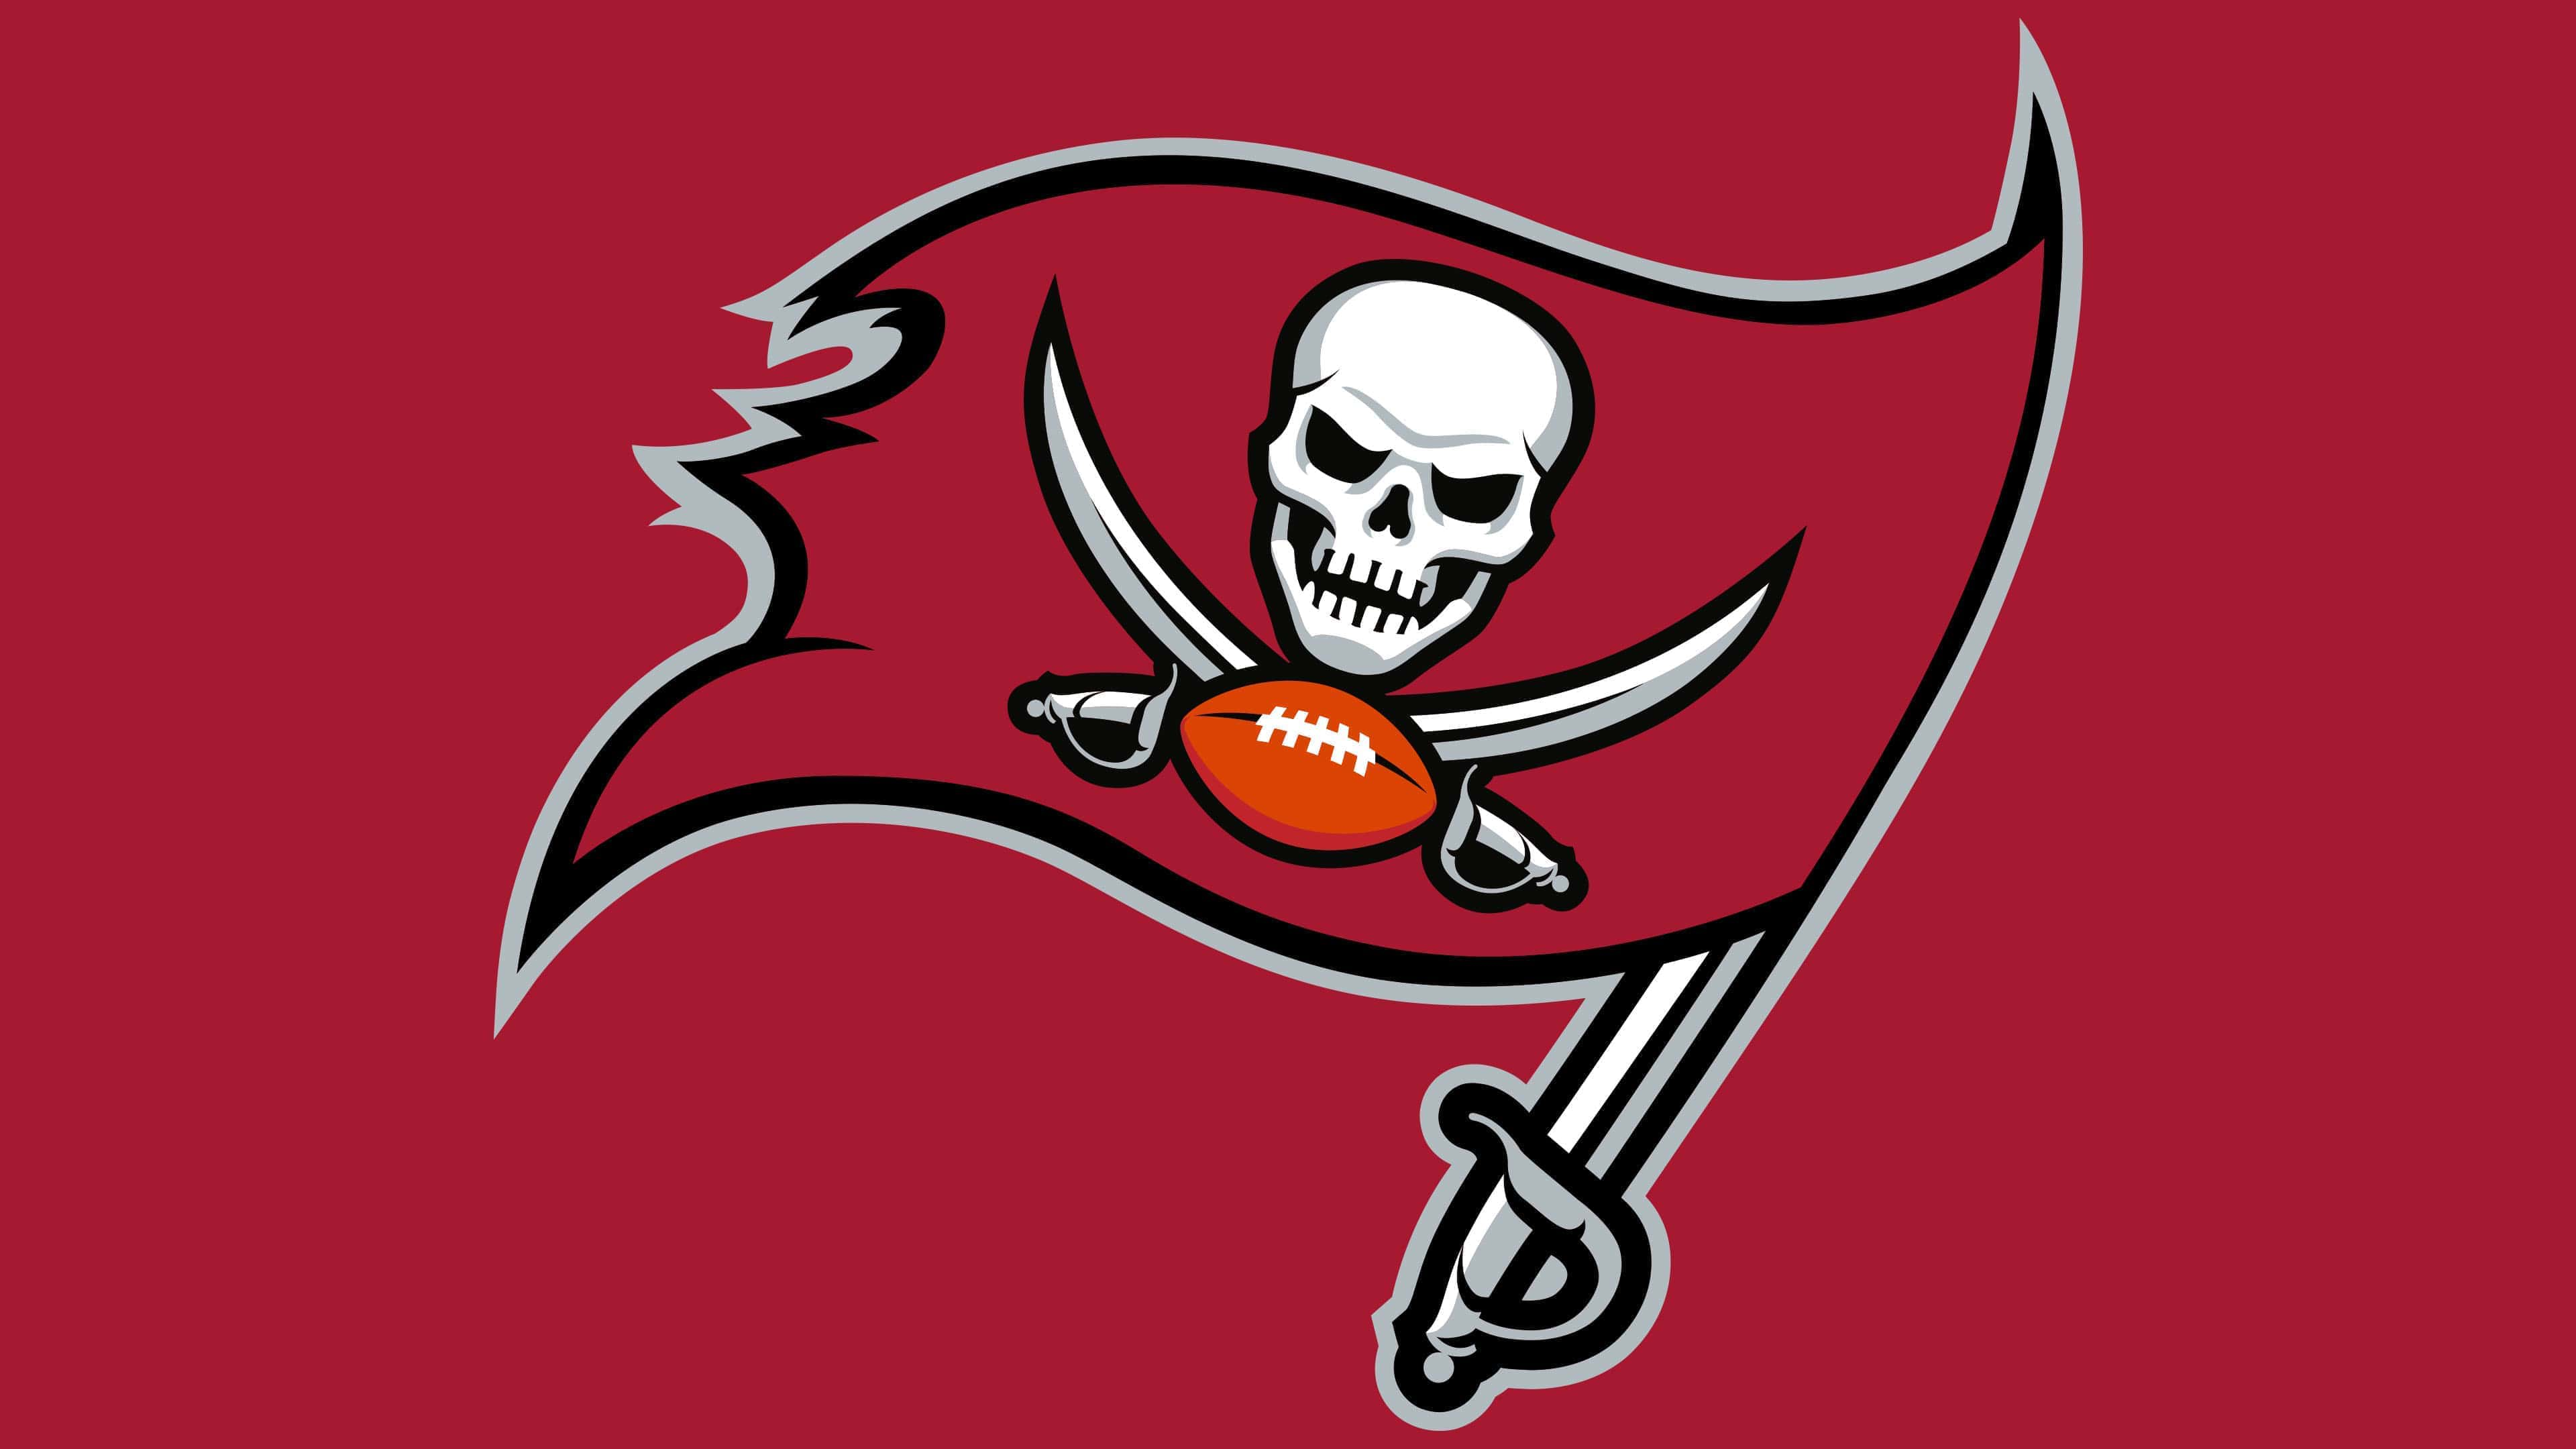 Tampa Bay Buccaneers Logo The Most Famous Brands And Company Logos In The World